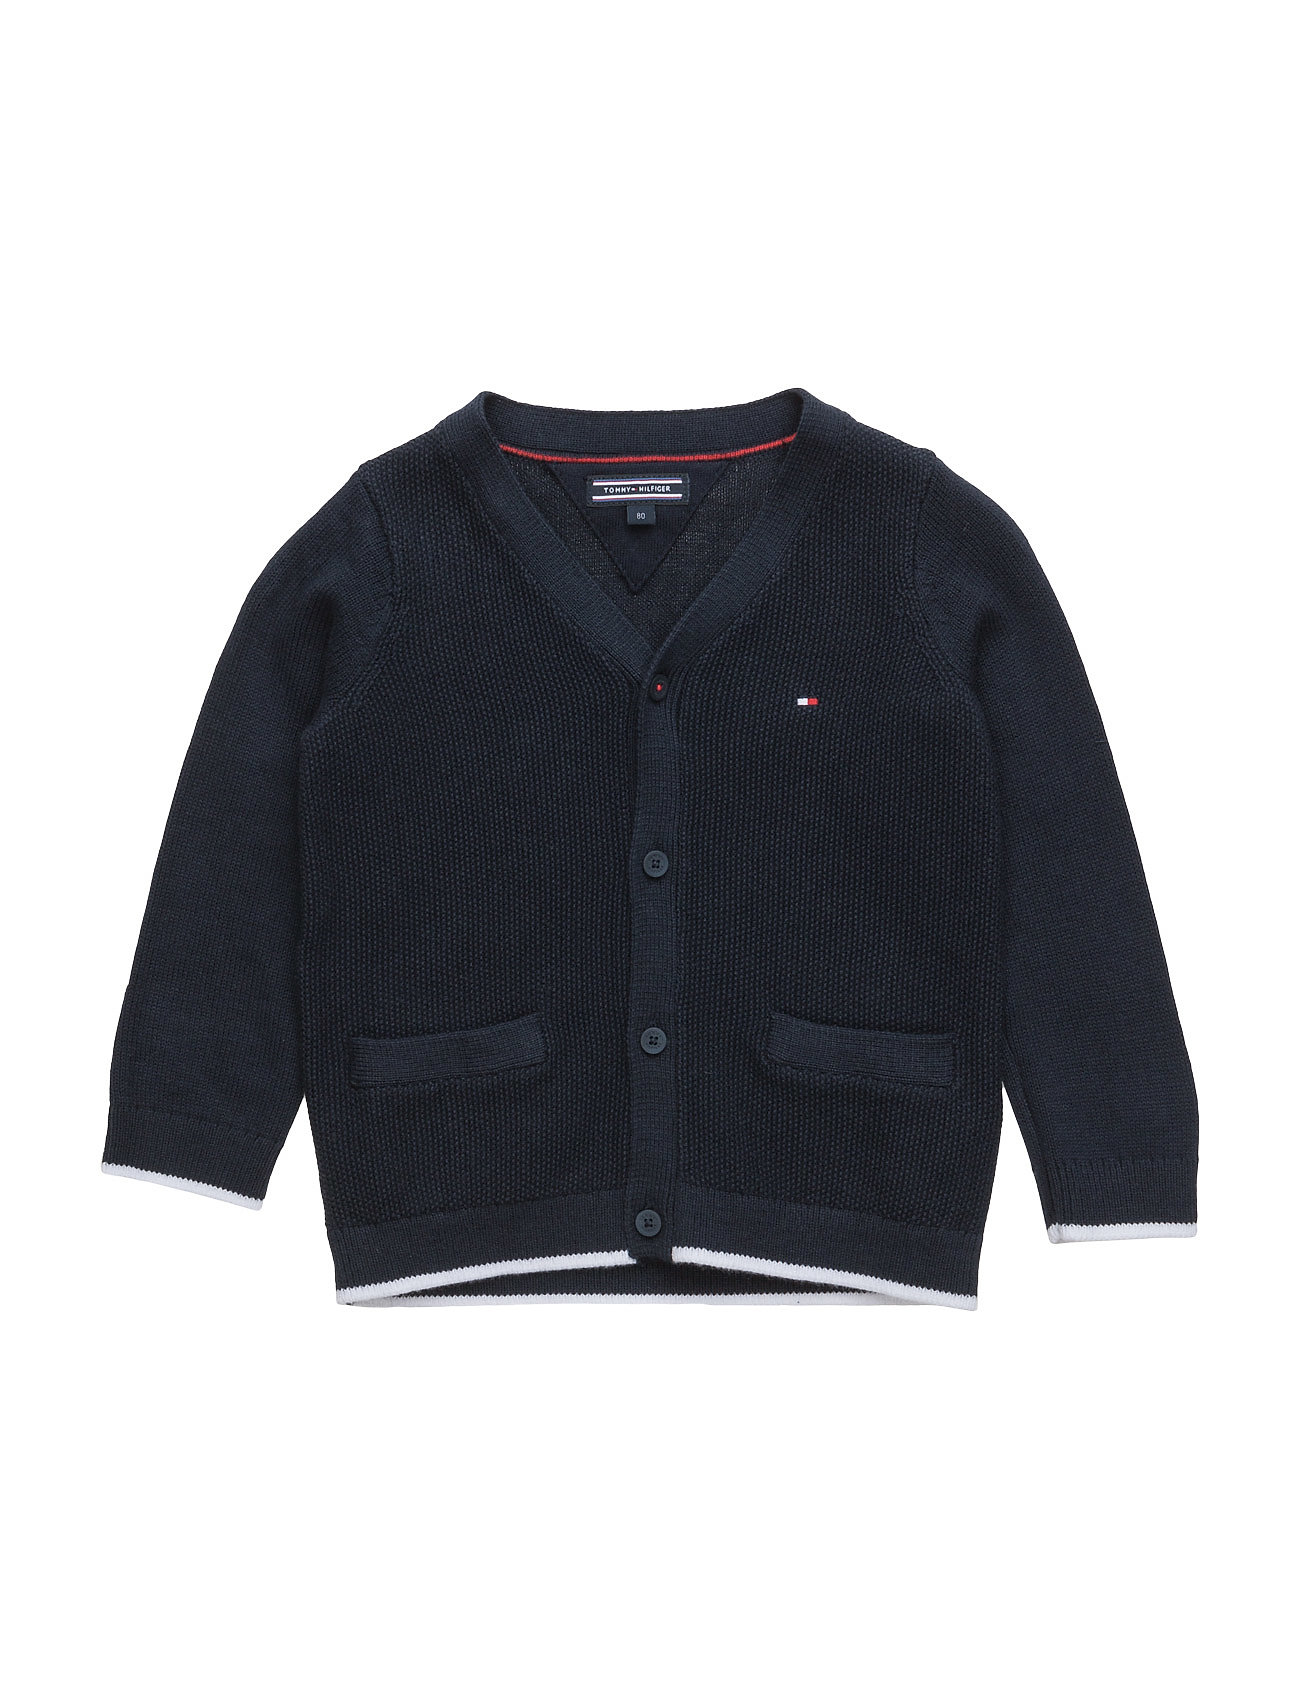 63390245bad Basic Baby Boy Cardigan L/S Tommy Hilfiger til - MoteJakten ...